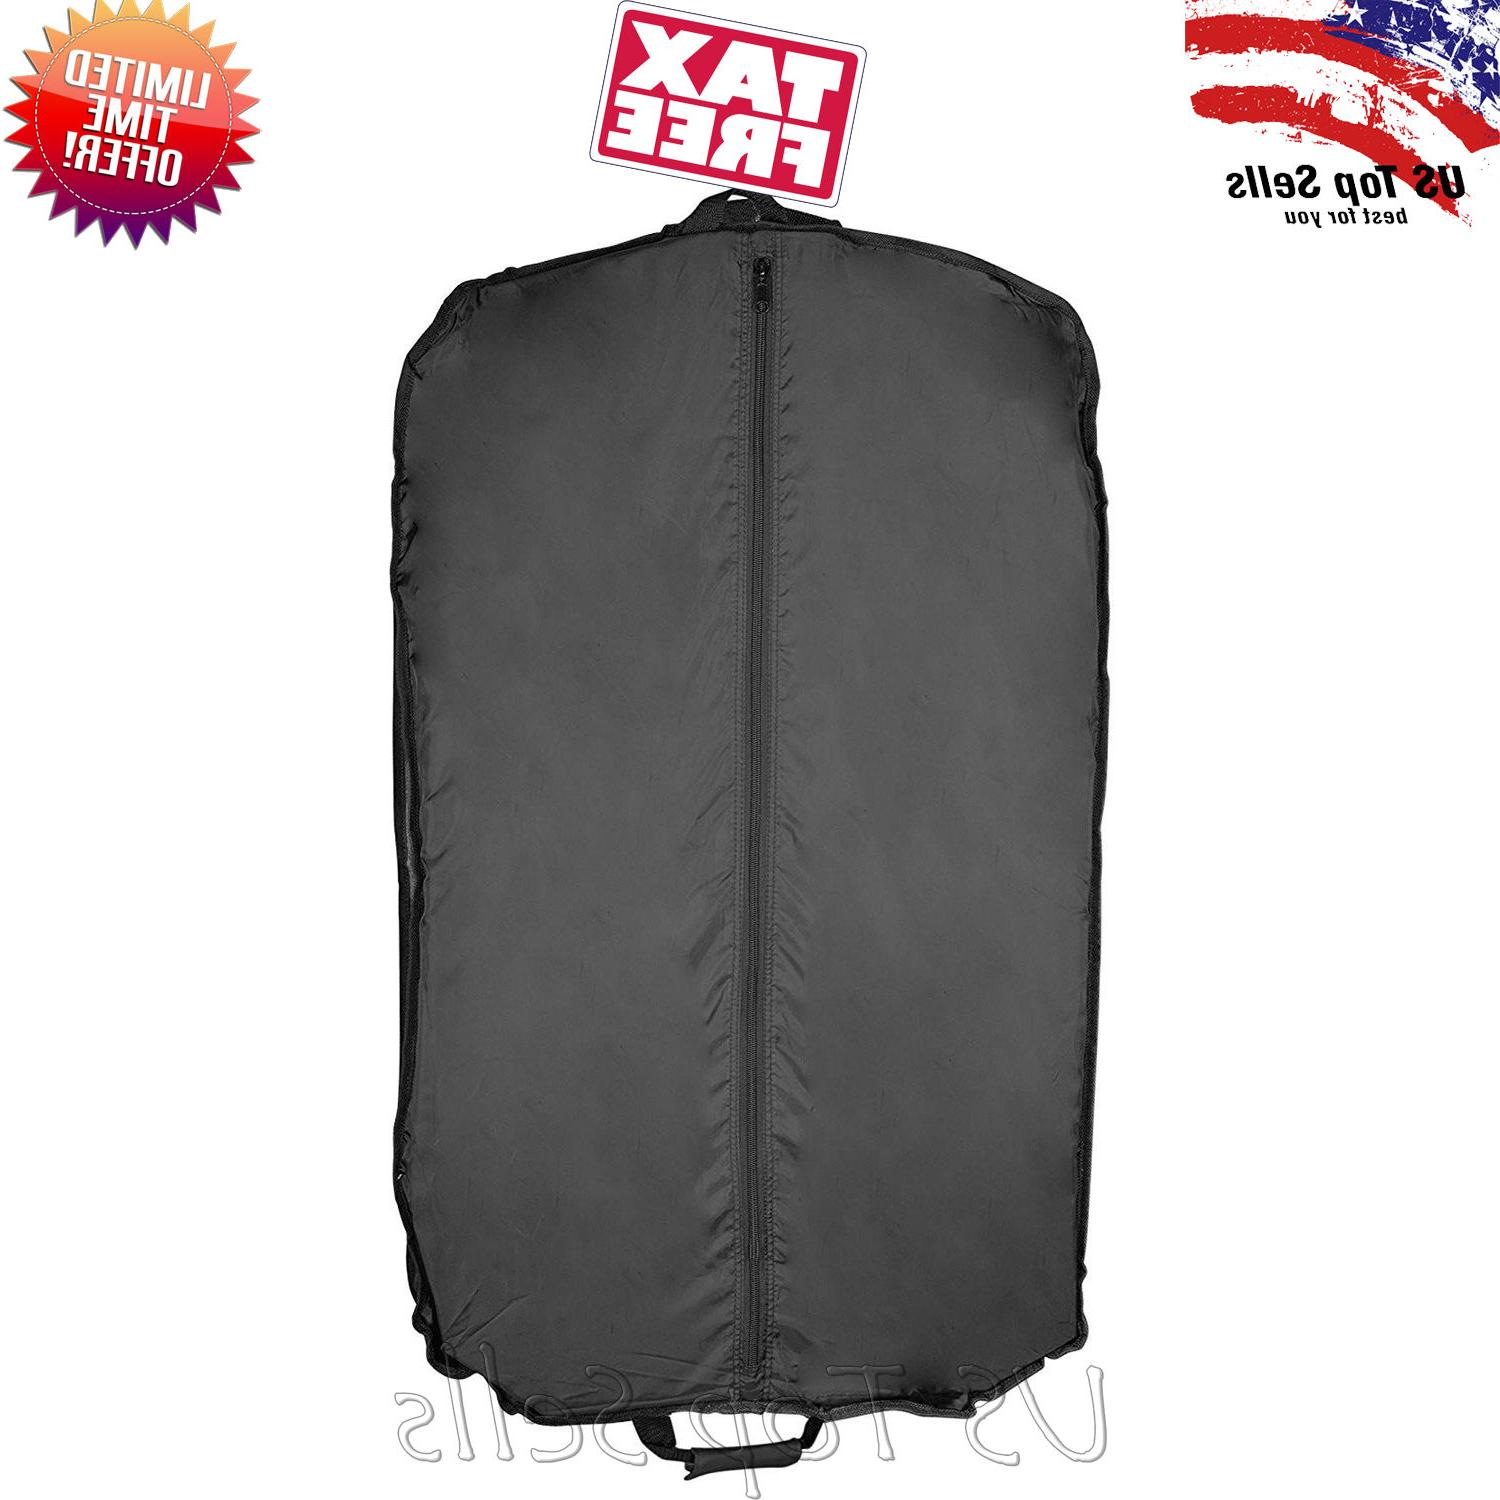 Clothes Cover Luggage